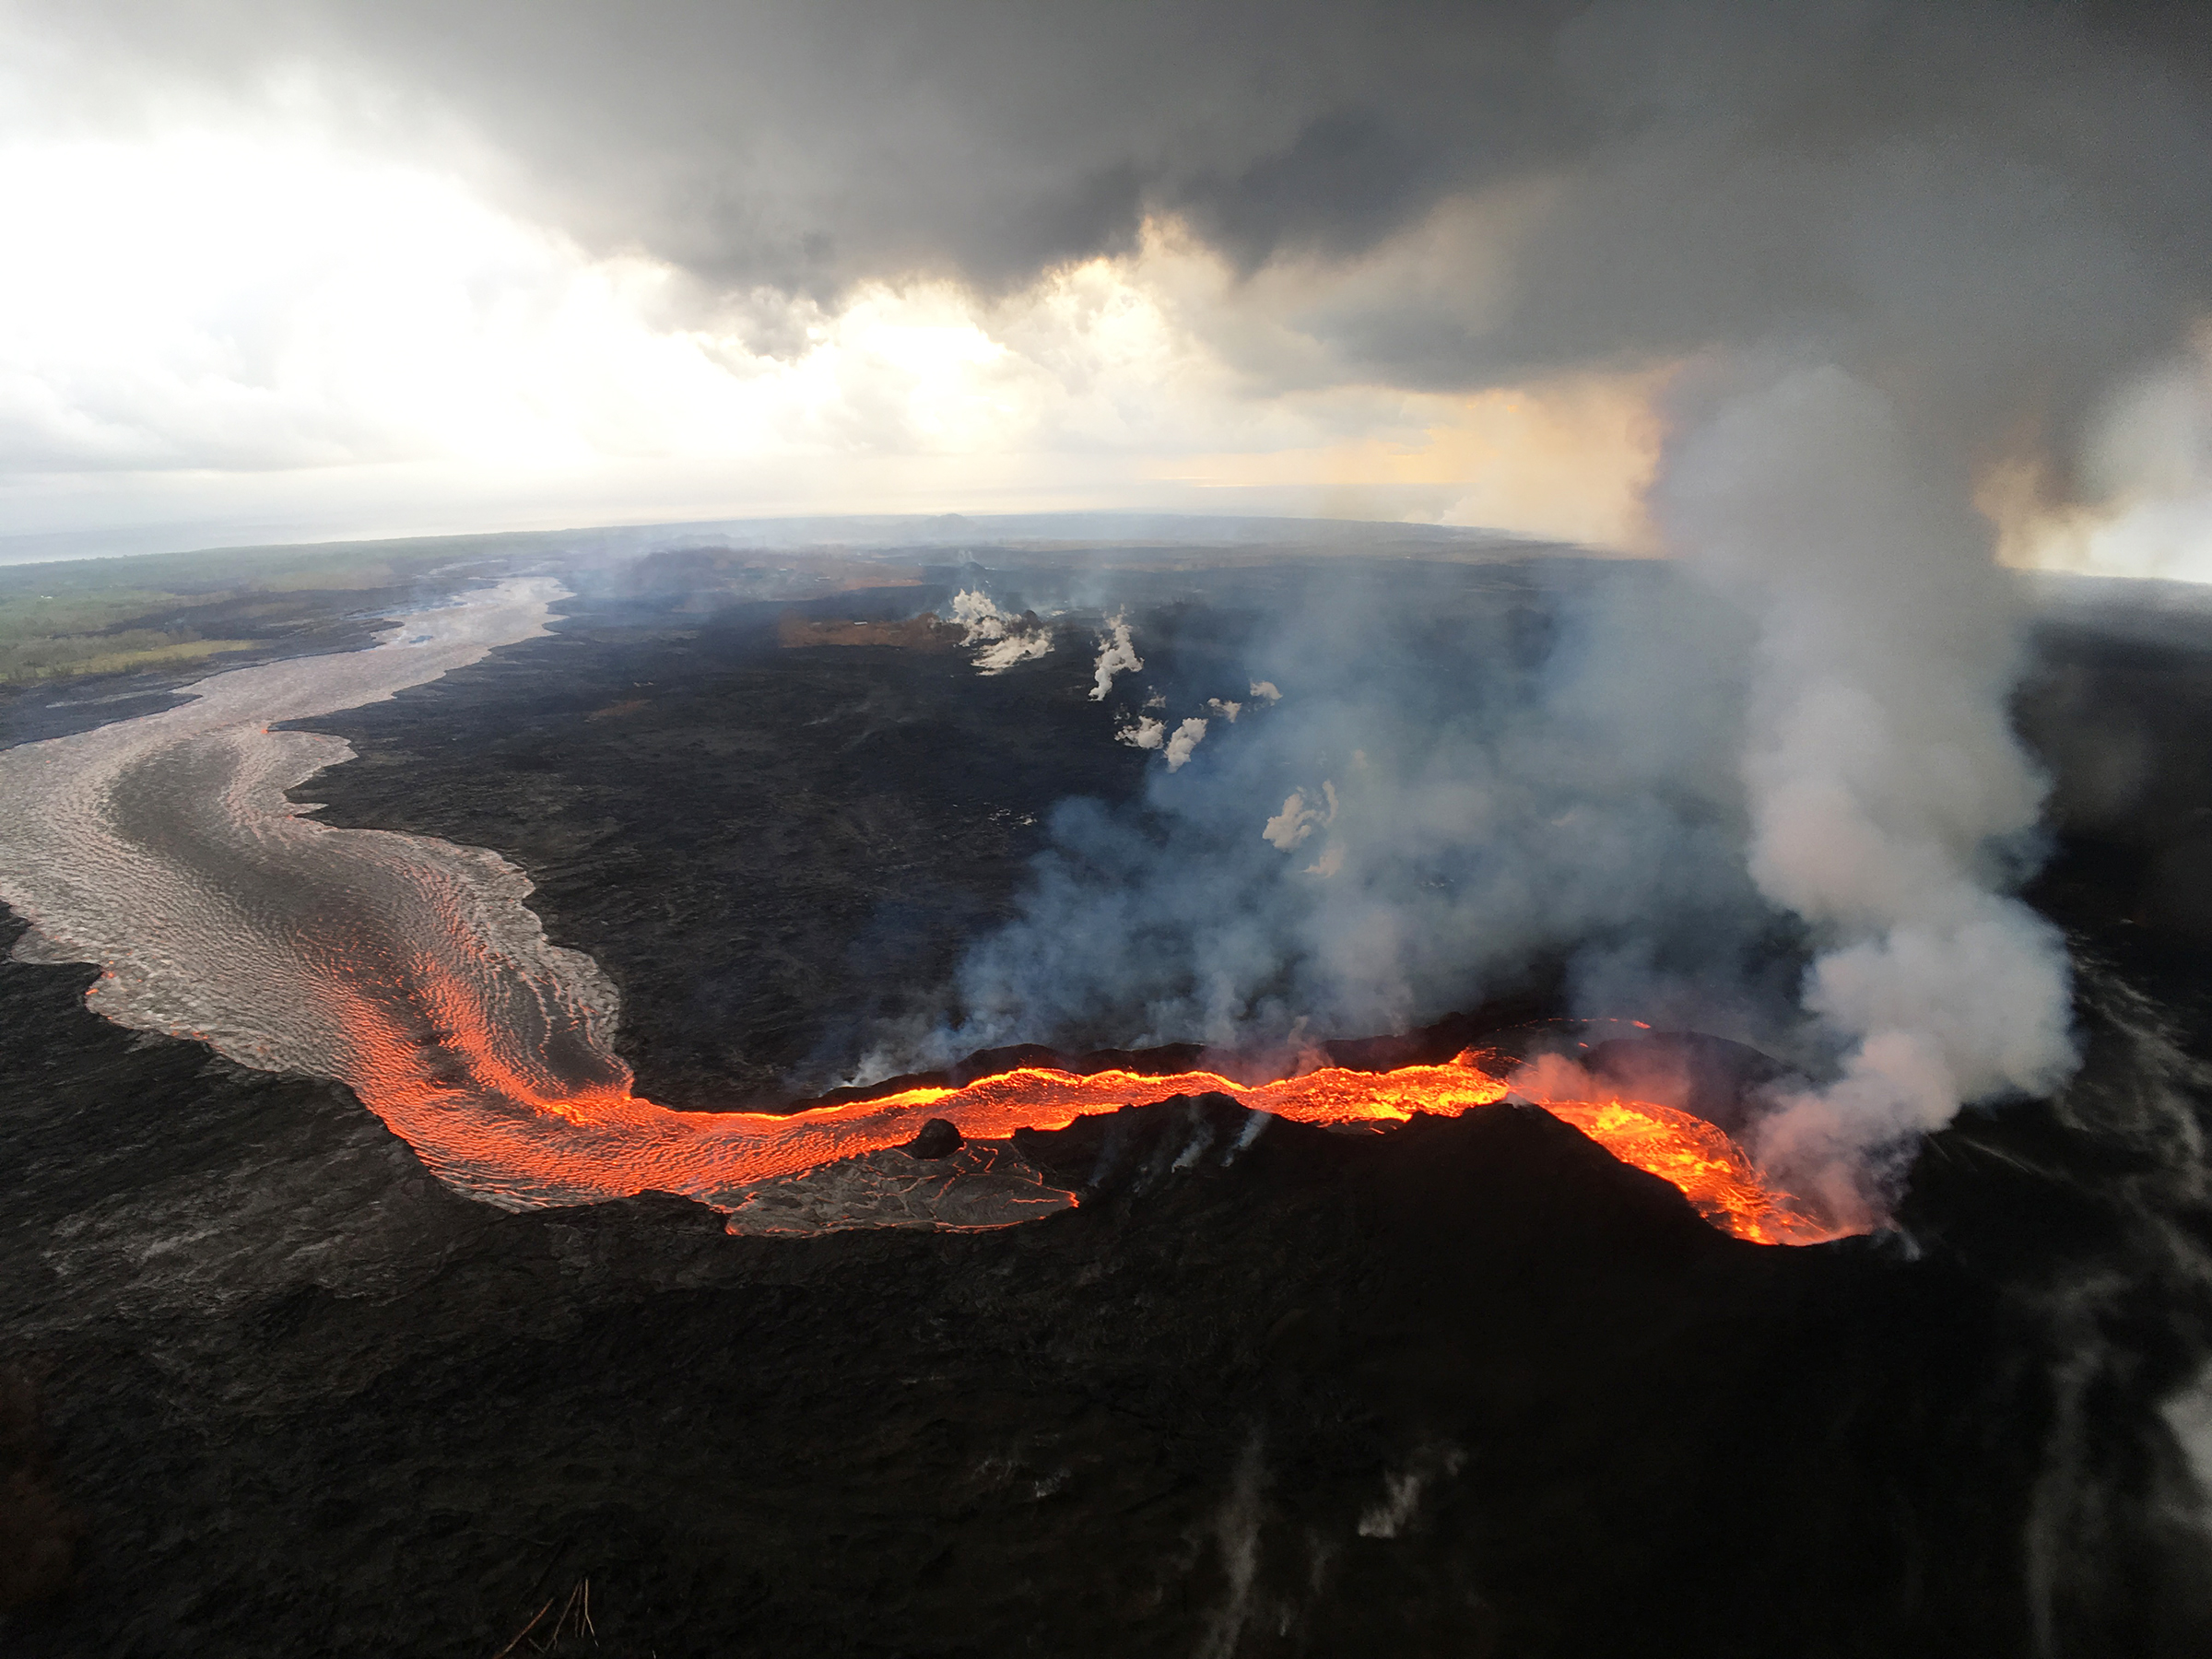 $30 Million in FEMA Funding Secured to Repair Water Systems Damaged by Kīlauea Eruption